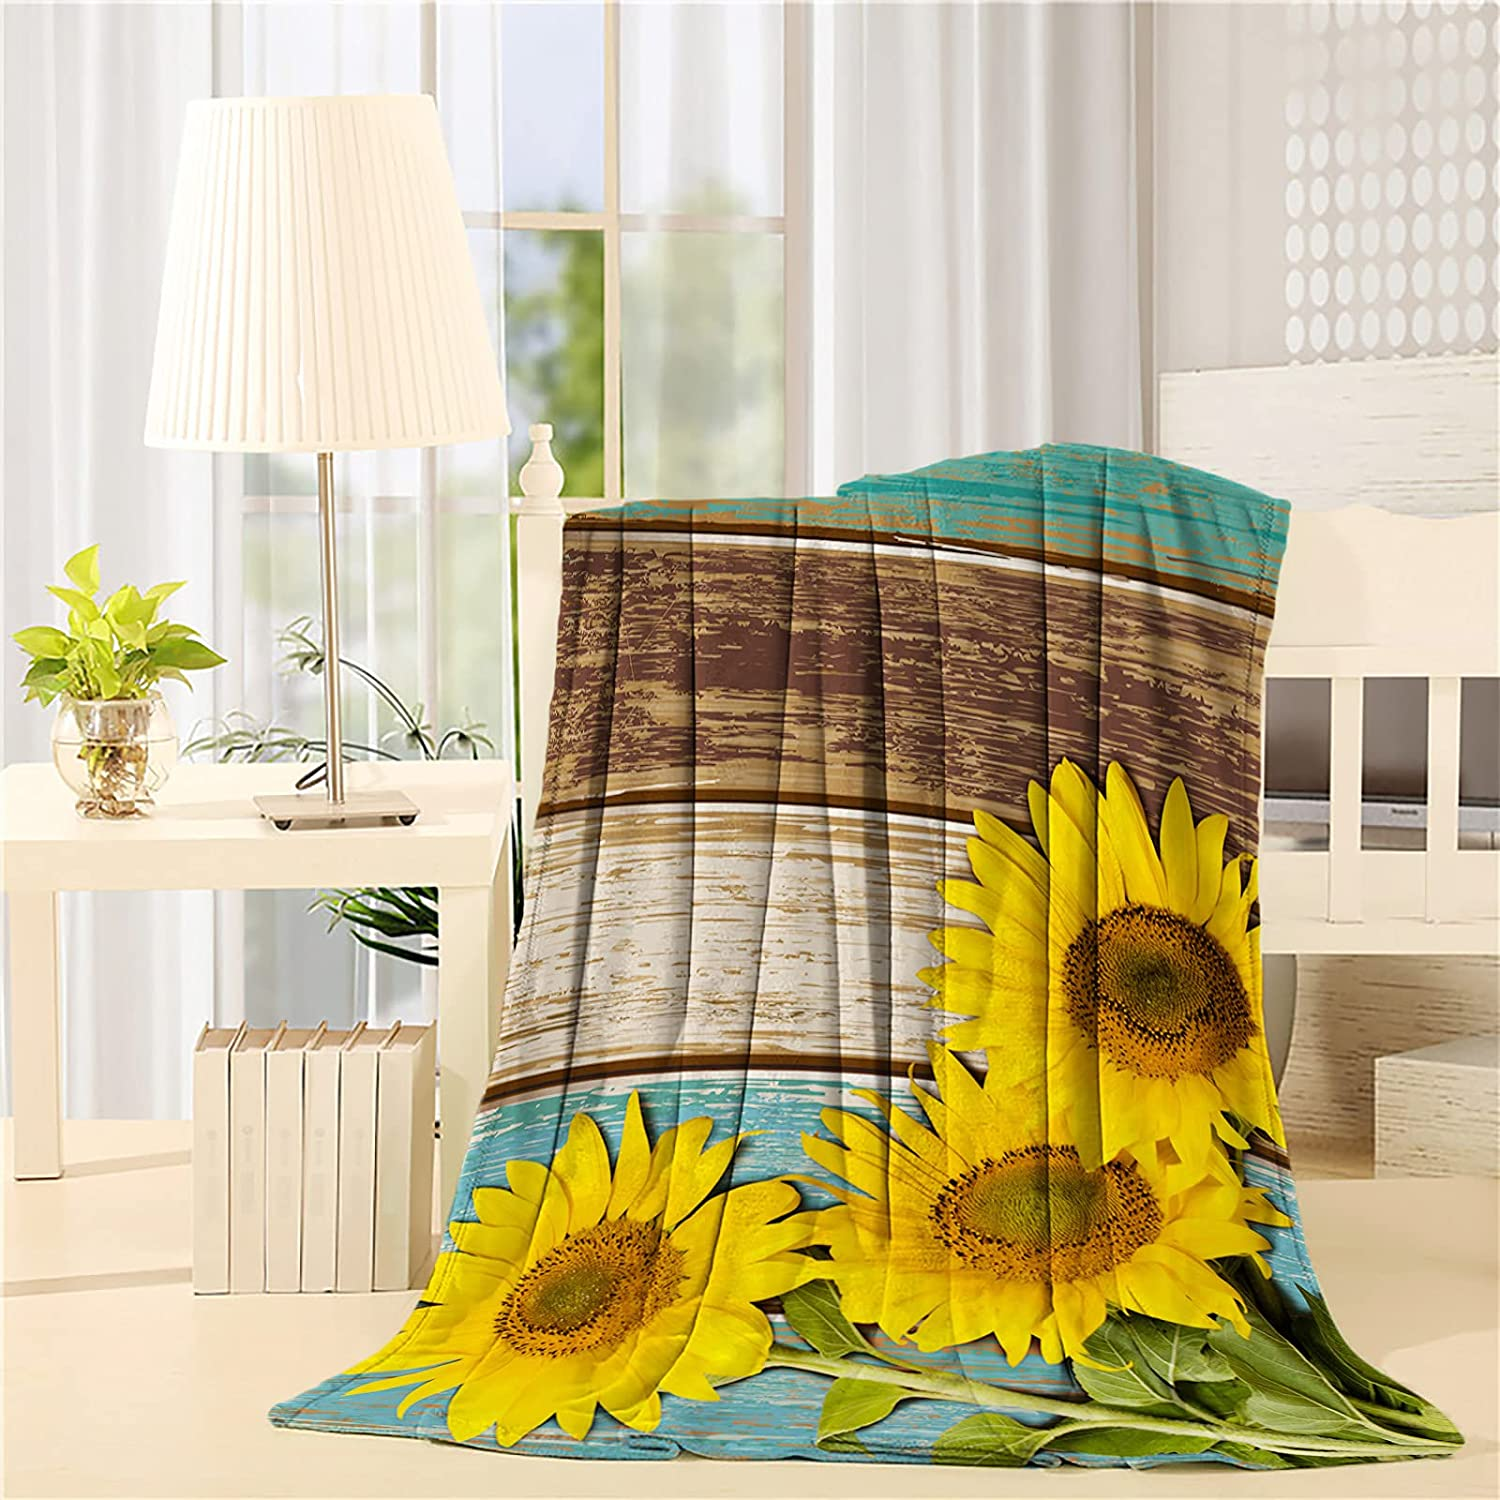 Savannan Max 78% OFF Don't miss the campaign Flannel Fleece Blanket Sunflower Wooden Rustic Old Pla